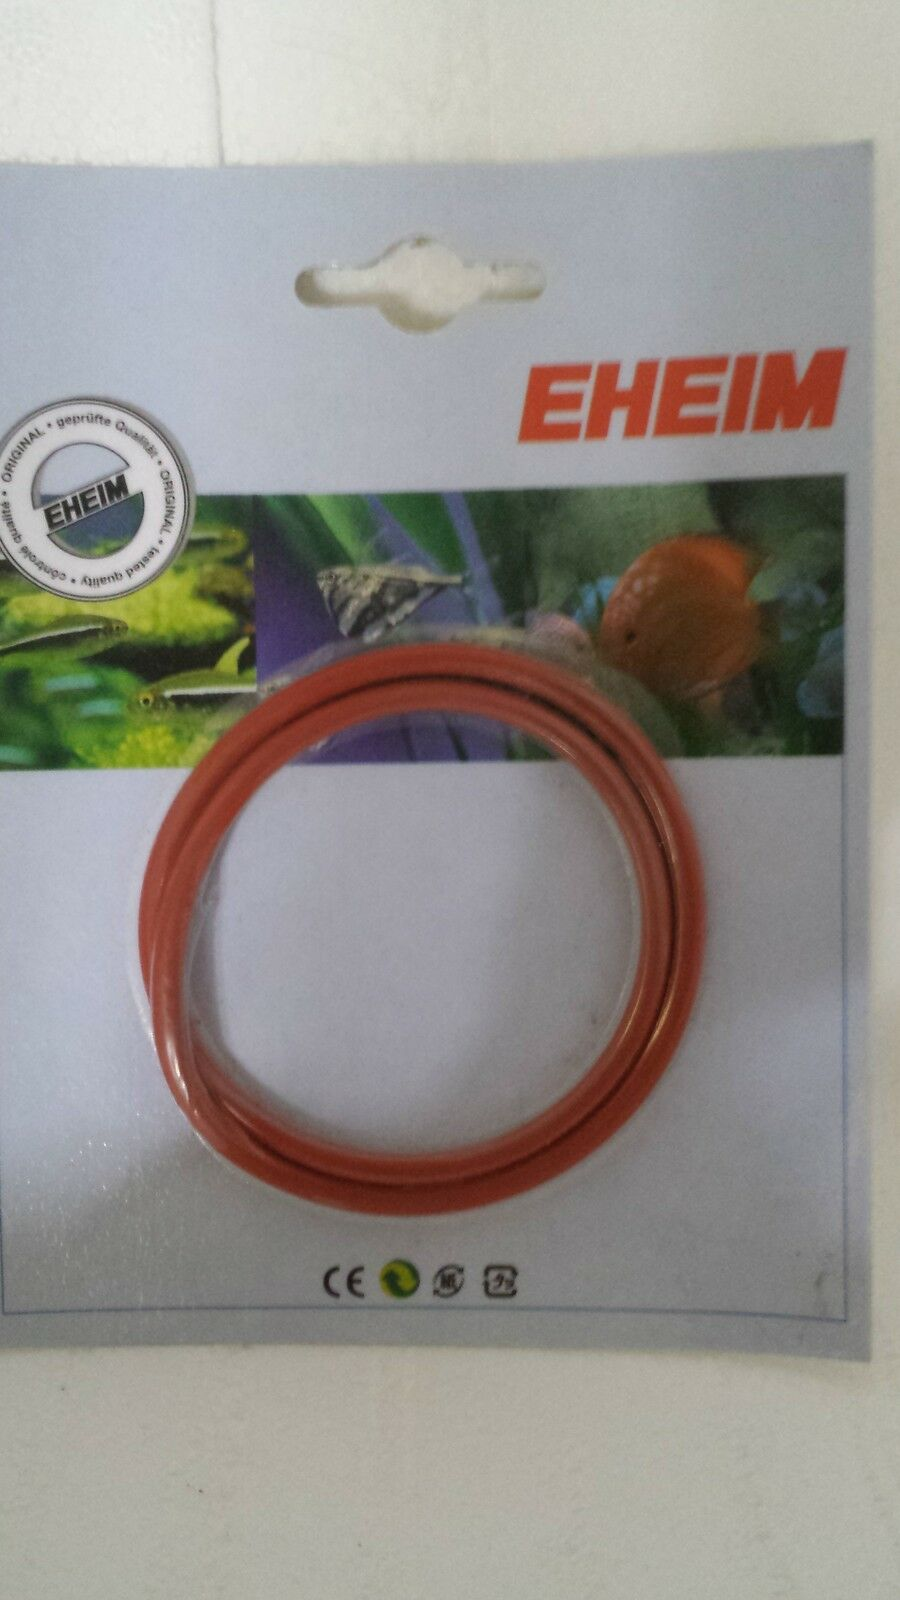 New Eheim 2213 O Ring part 7273118